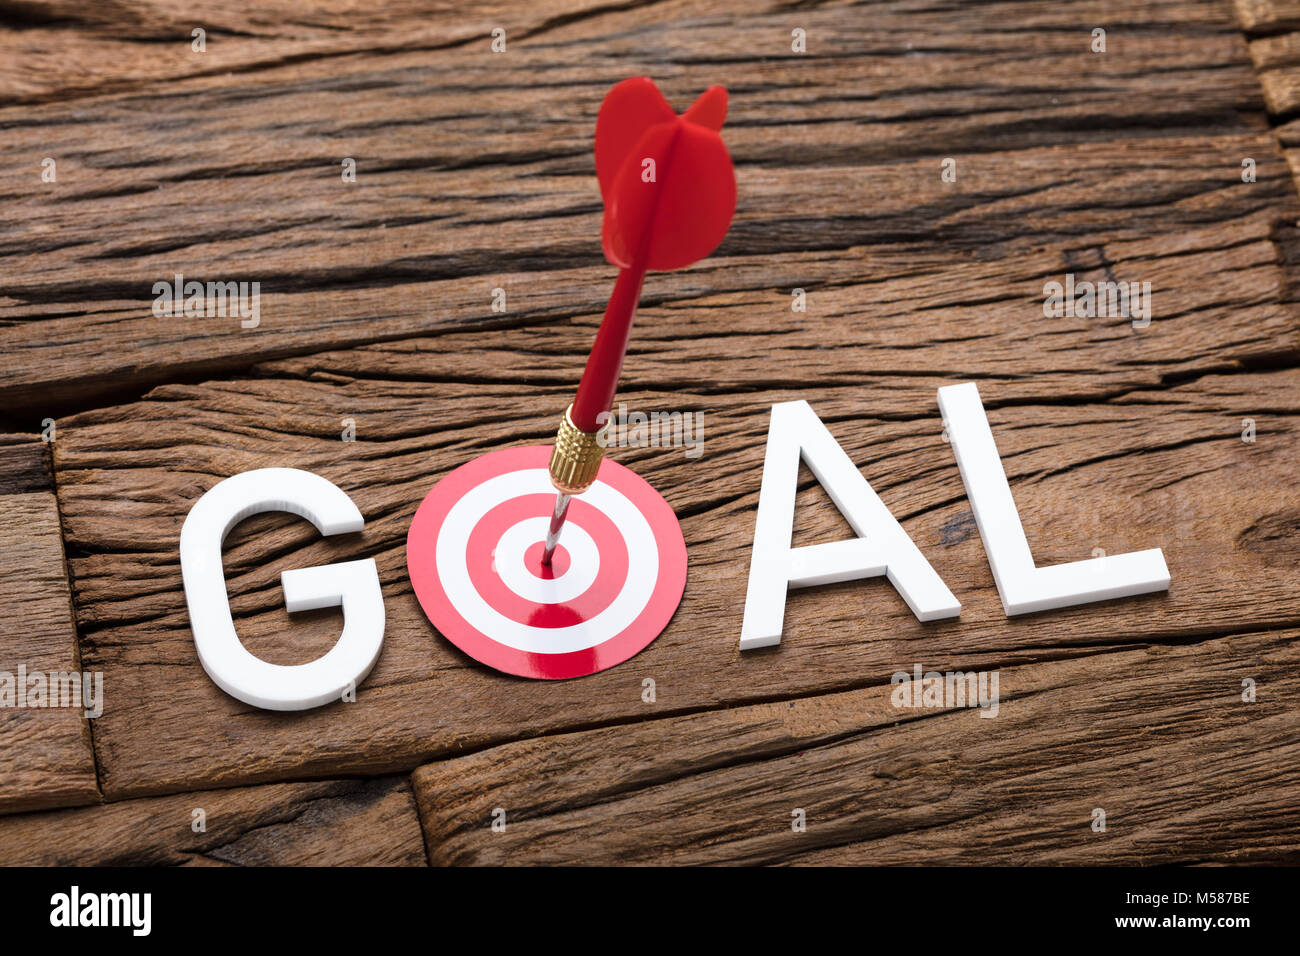 High angle view of red arrow in dartboard with goal text on wooden table - Stock Image